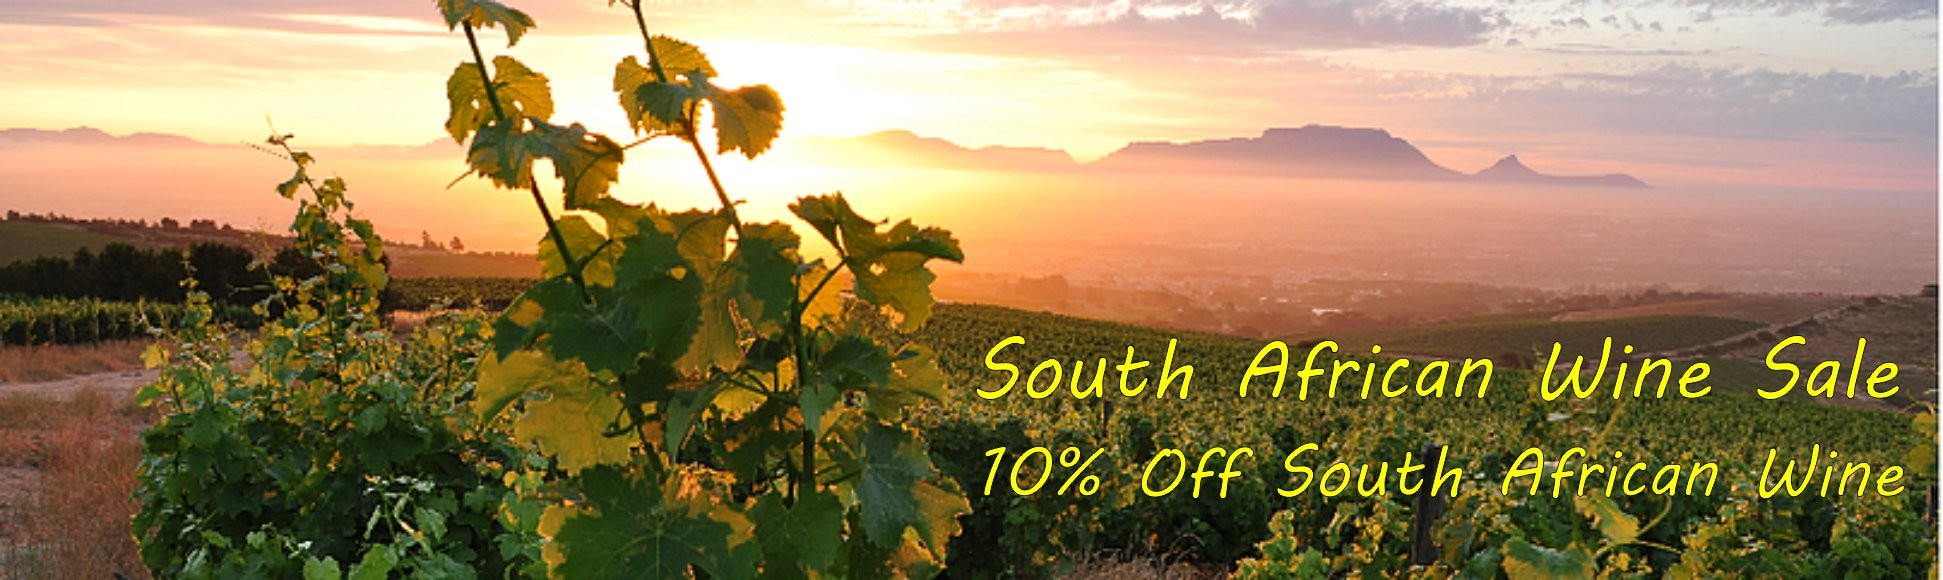 South African Wines - 10% Off!